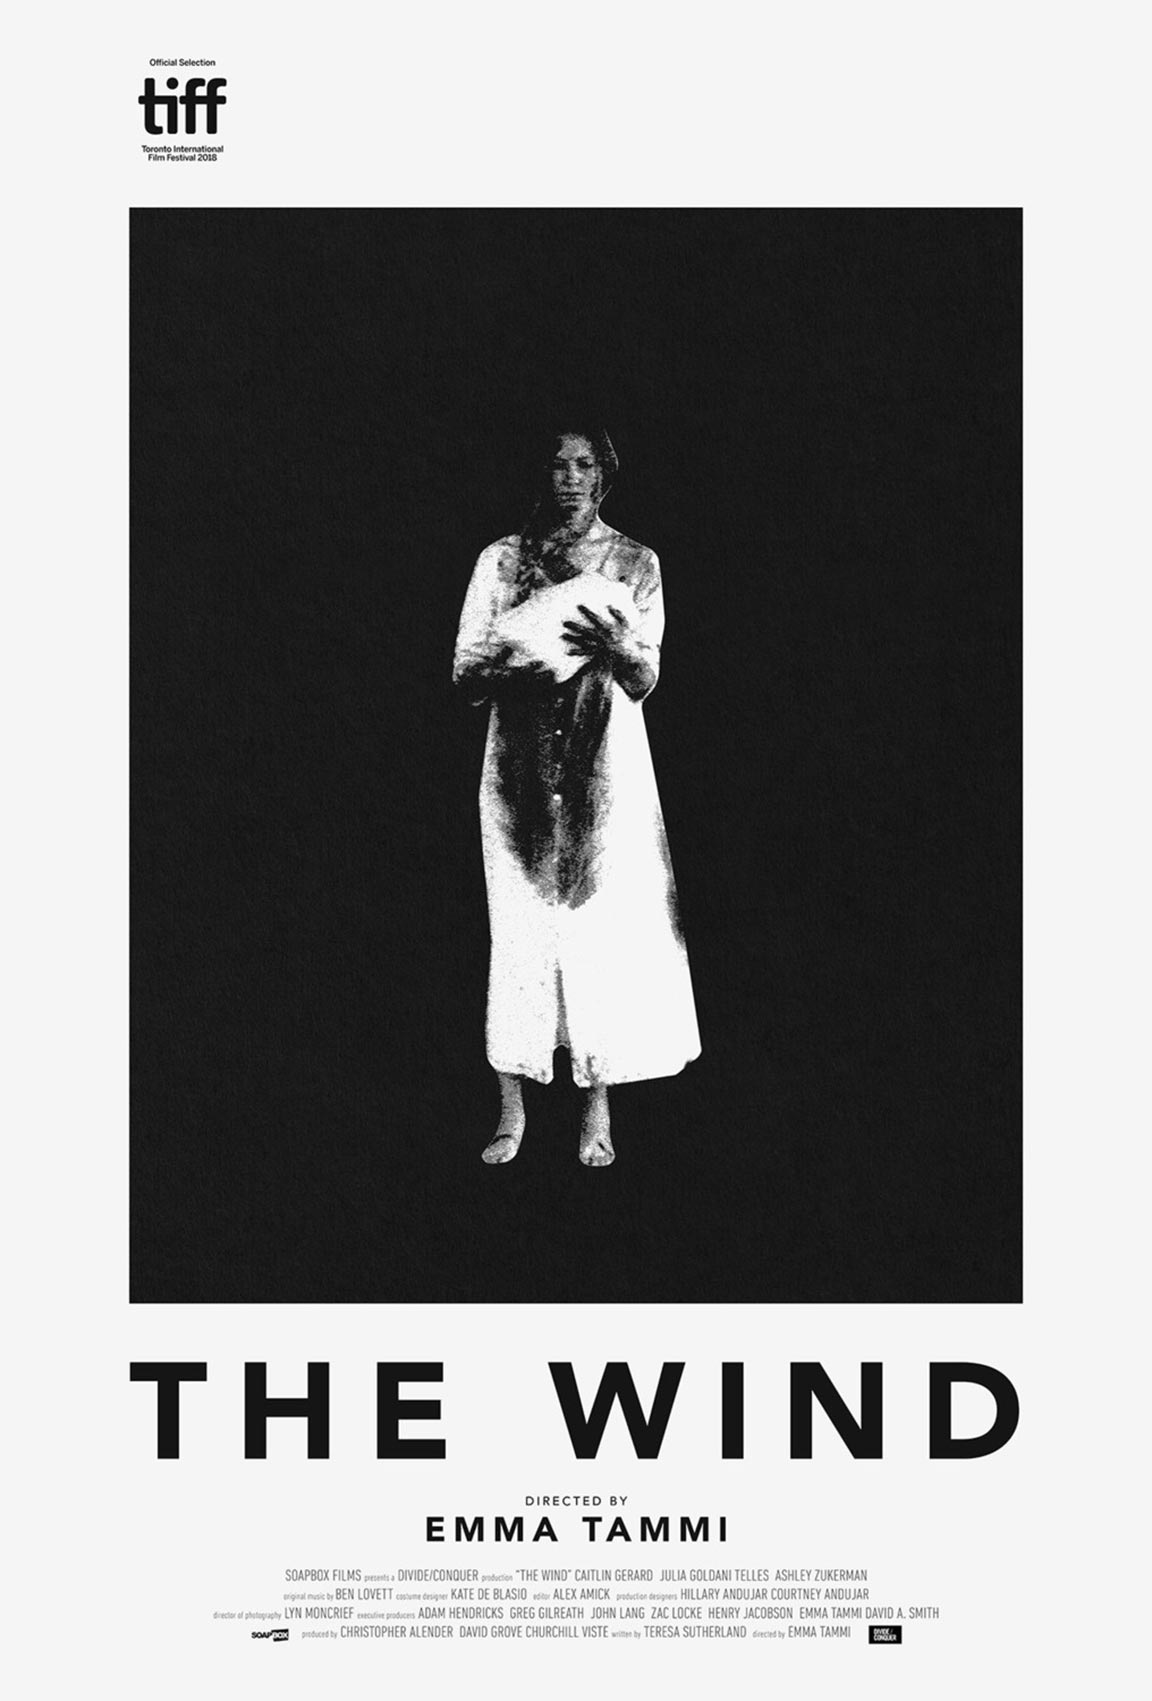 https://cdn.traileraddict.com/content/ifc-films/the-wind-2019-poster.jpg